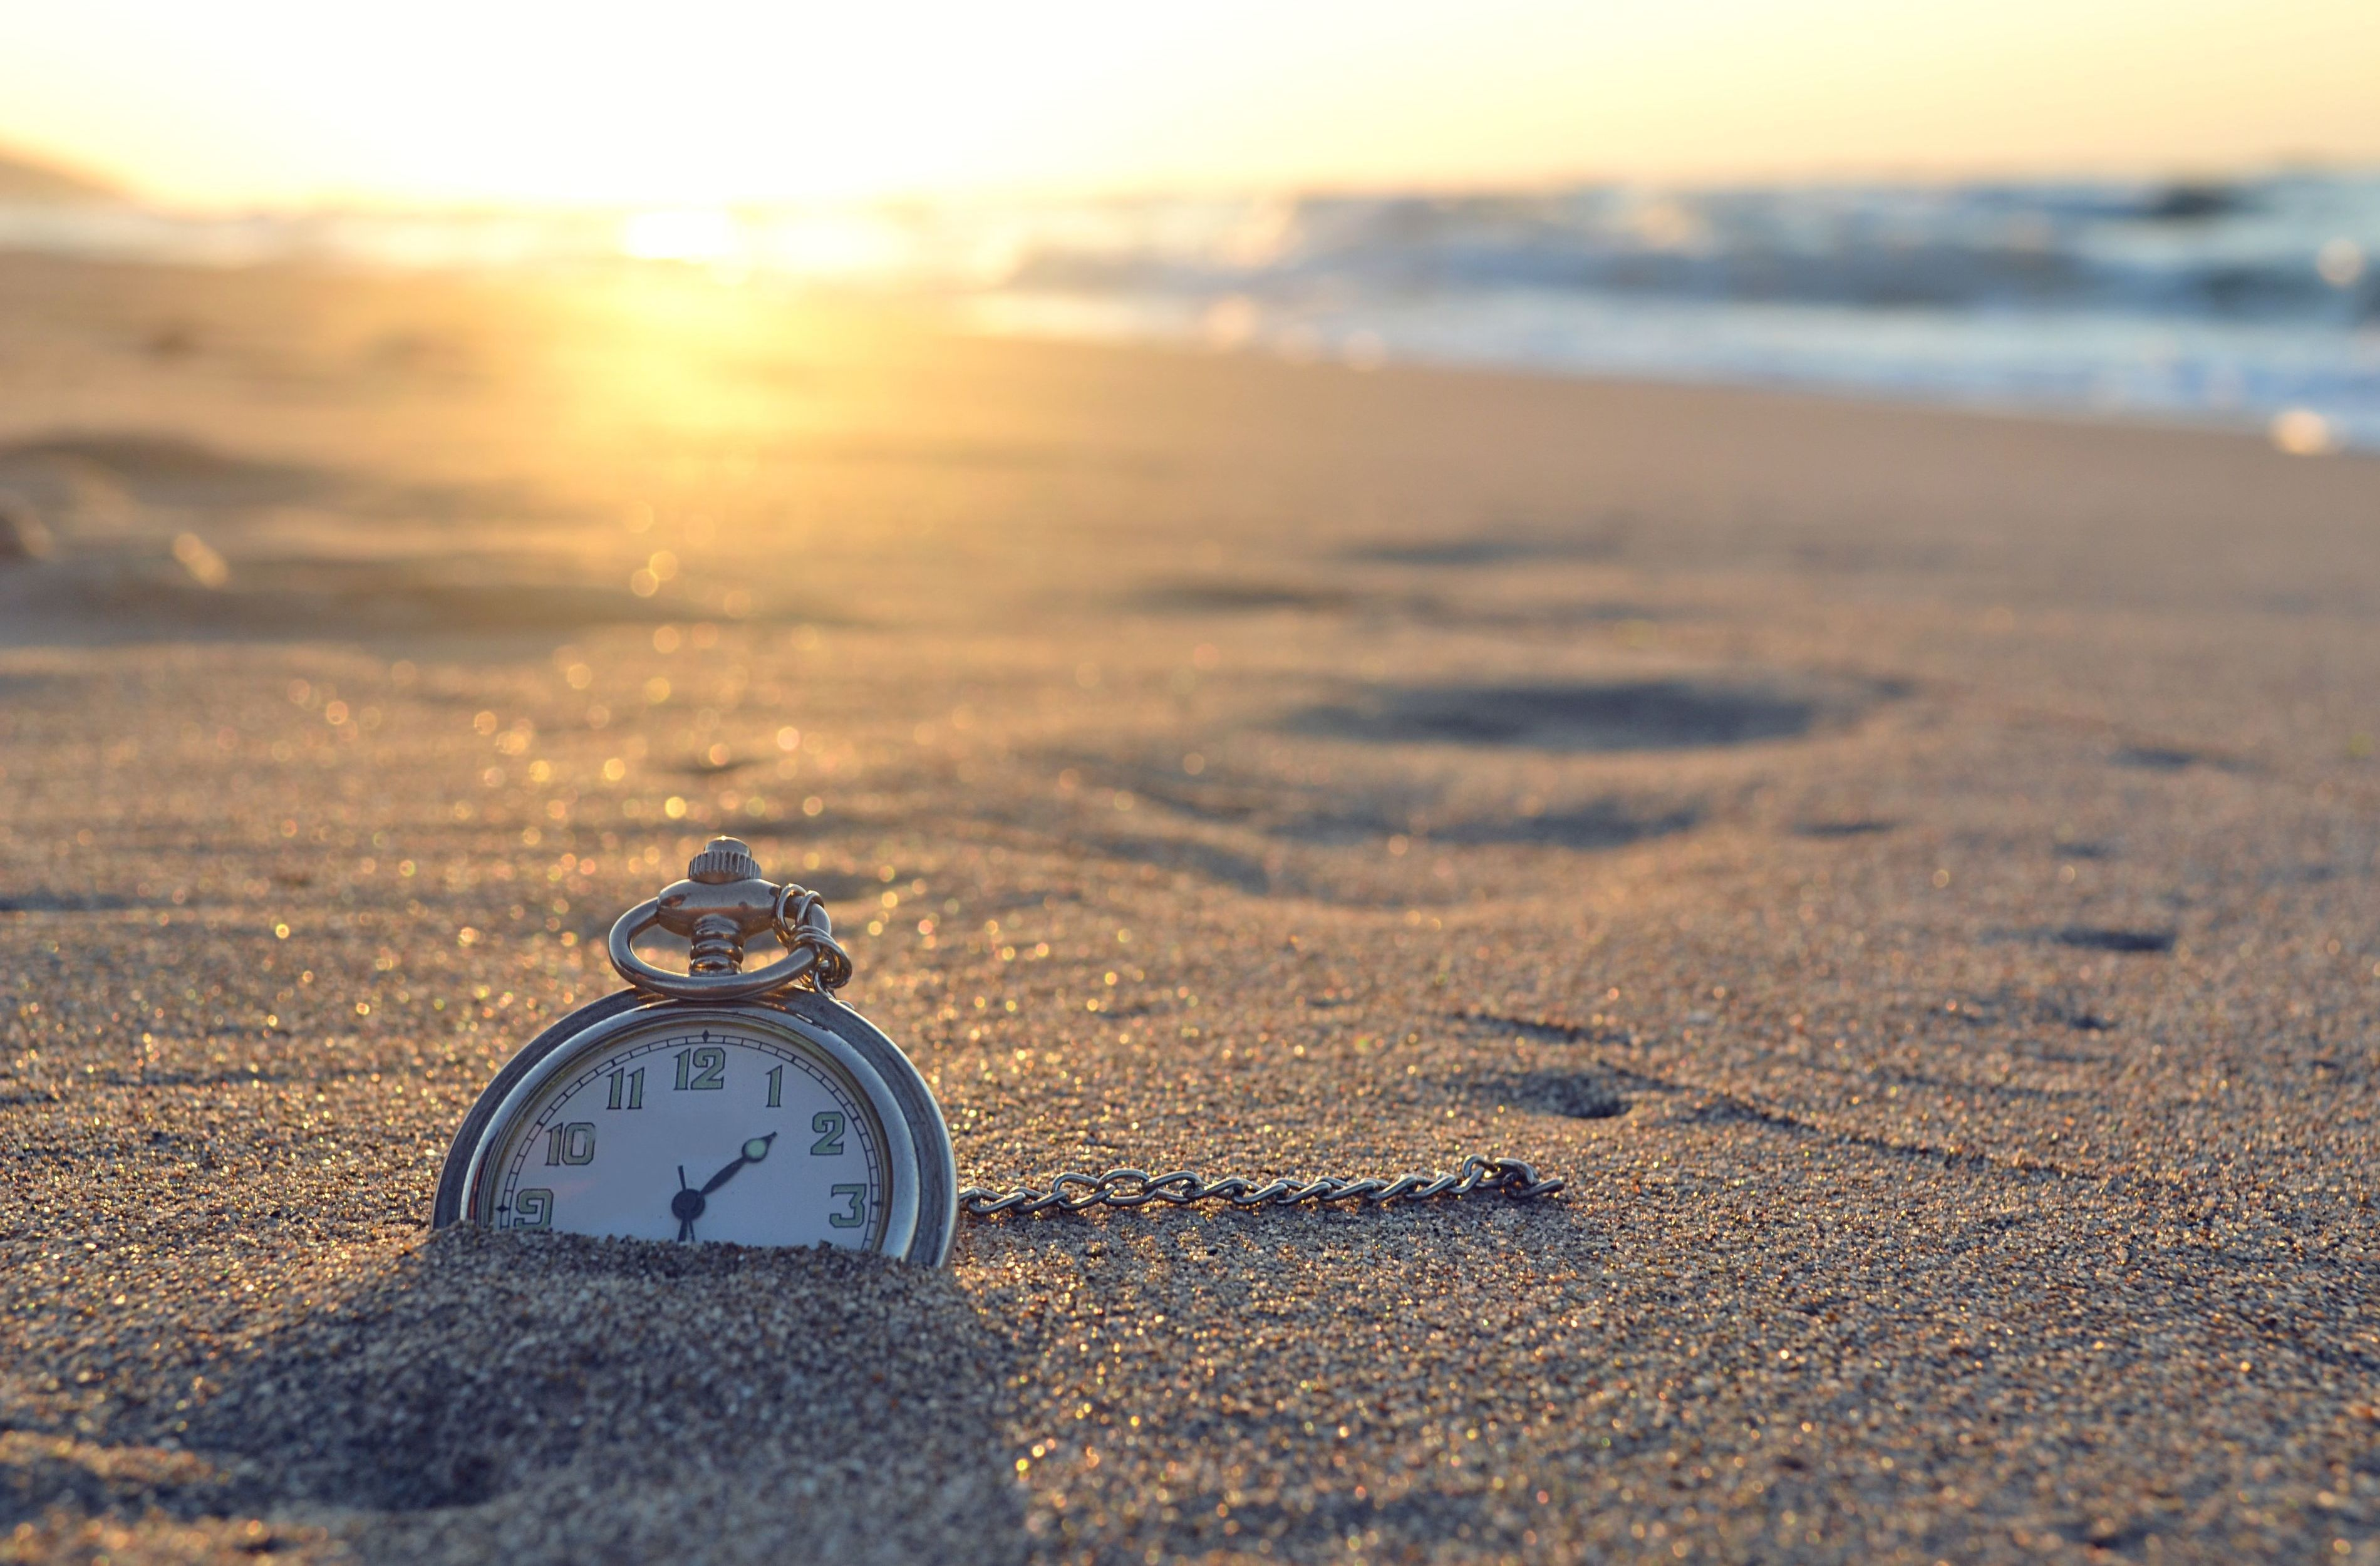 Pocket watch on the beach the meaning of time leaving its footprints